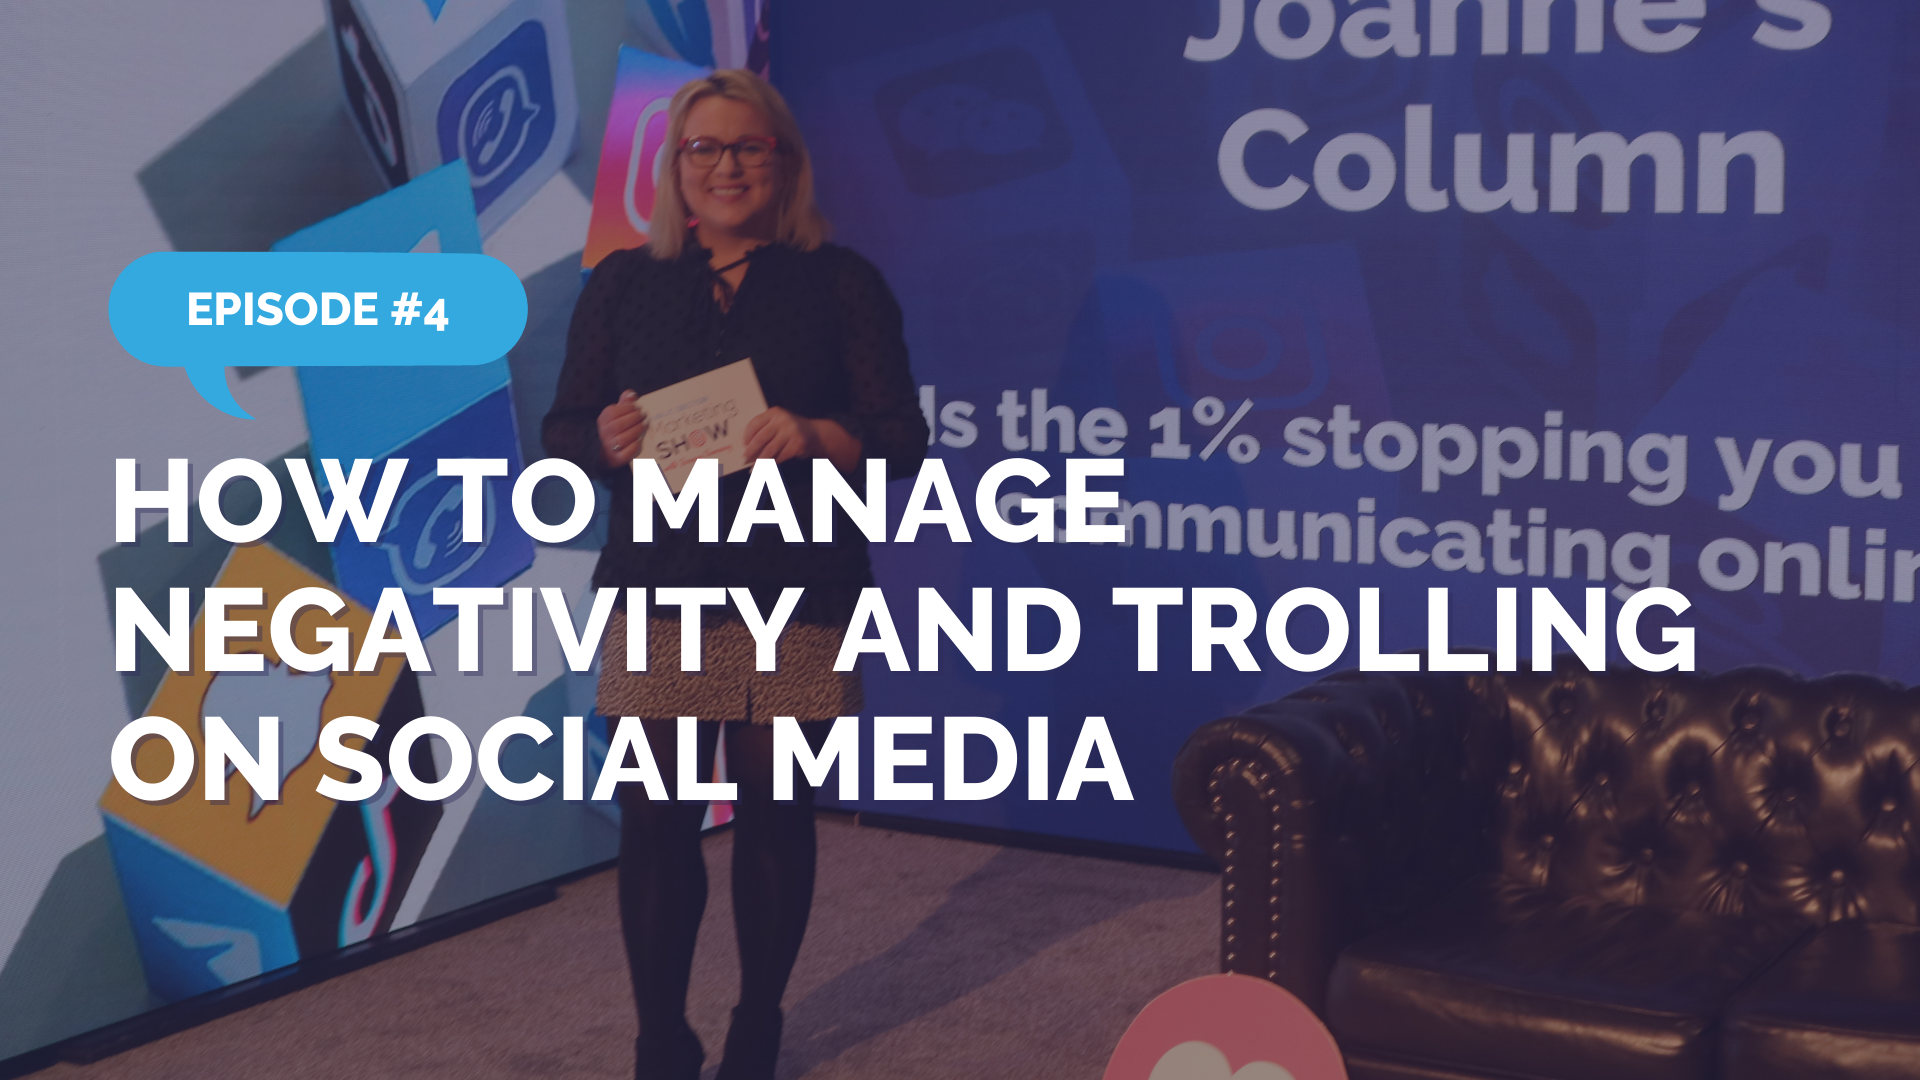 Episode 4 - How to Manage Negativity and Trolling on Social Media